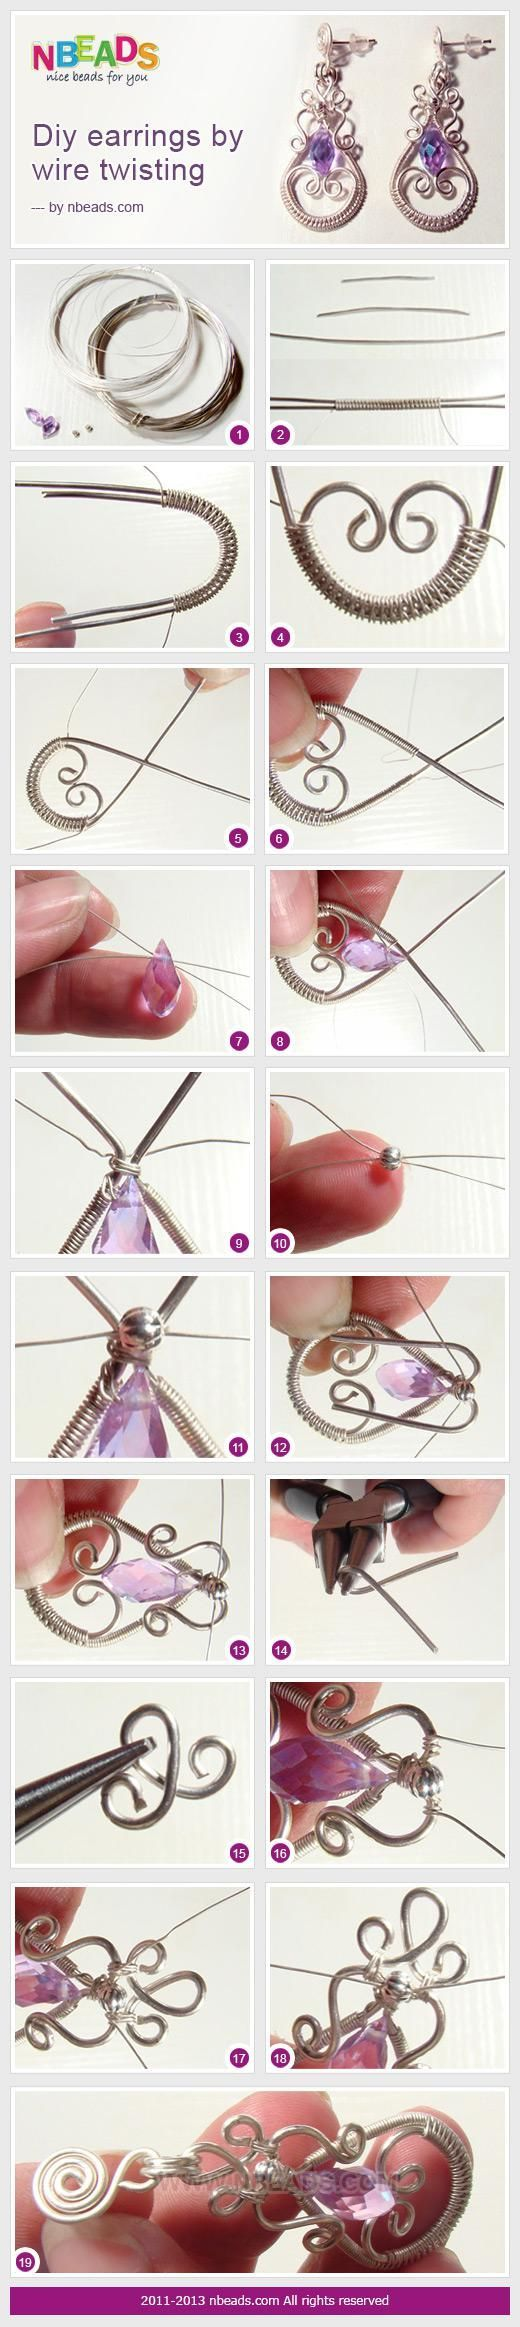 1133 best Wire-Art, Draht, Metall images on Pinterest | Wire ...